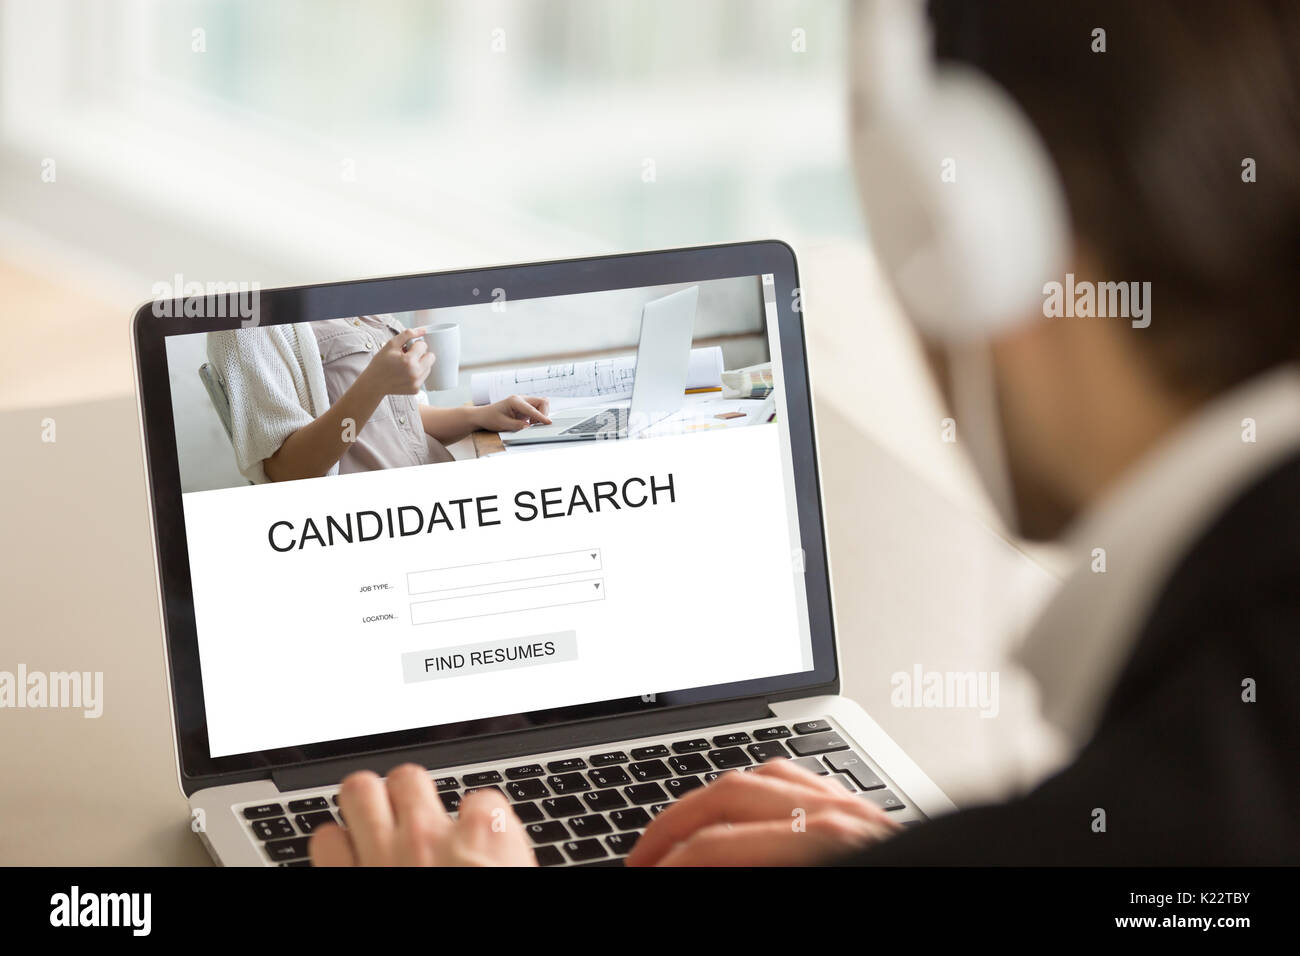 employer using laptop searching candidates find resumes online